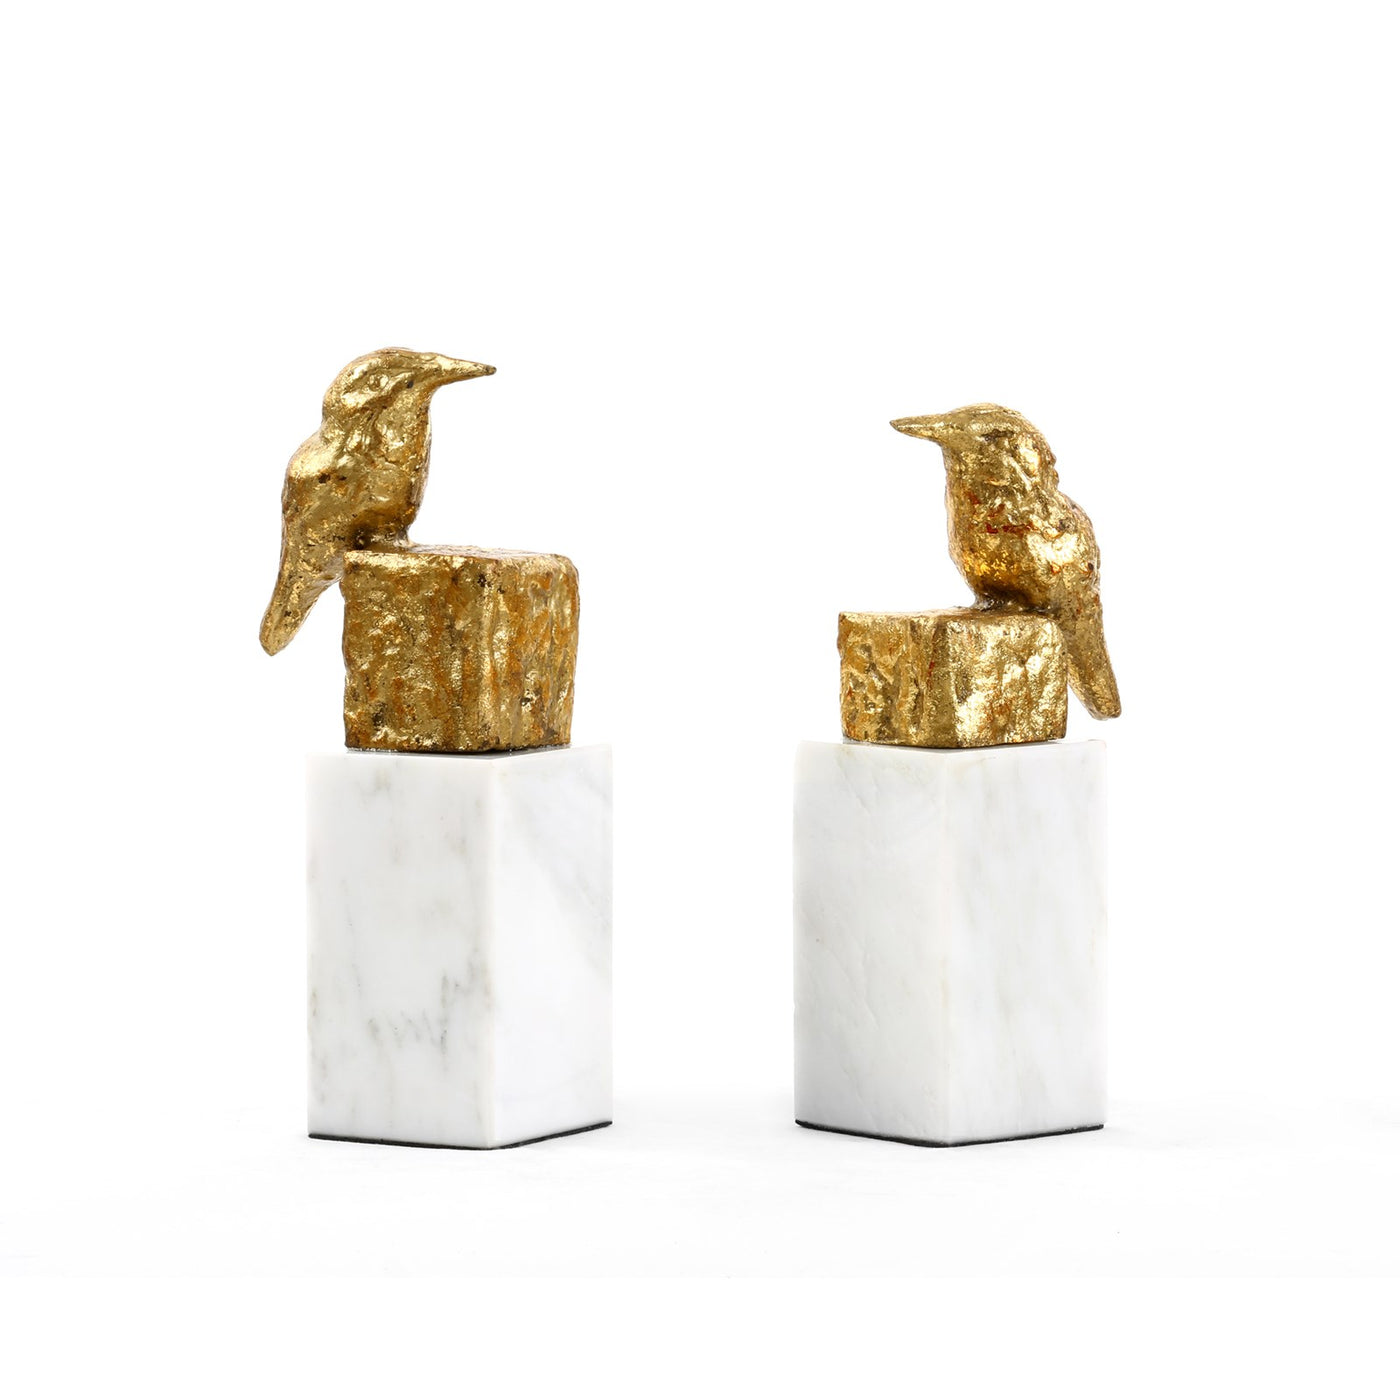 bungalow 5 finch statue pair gold